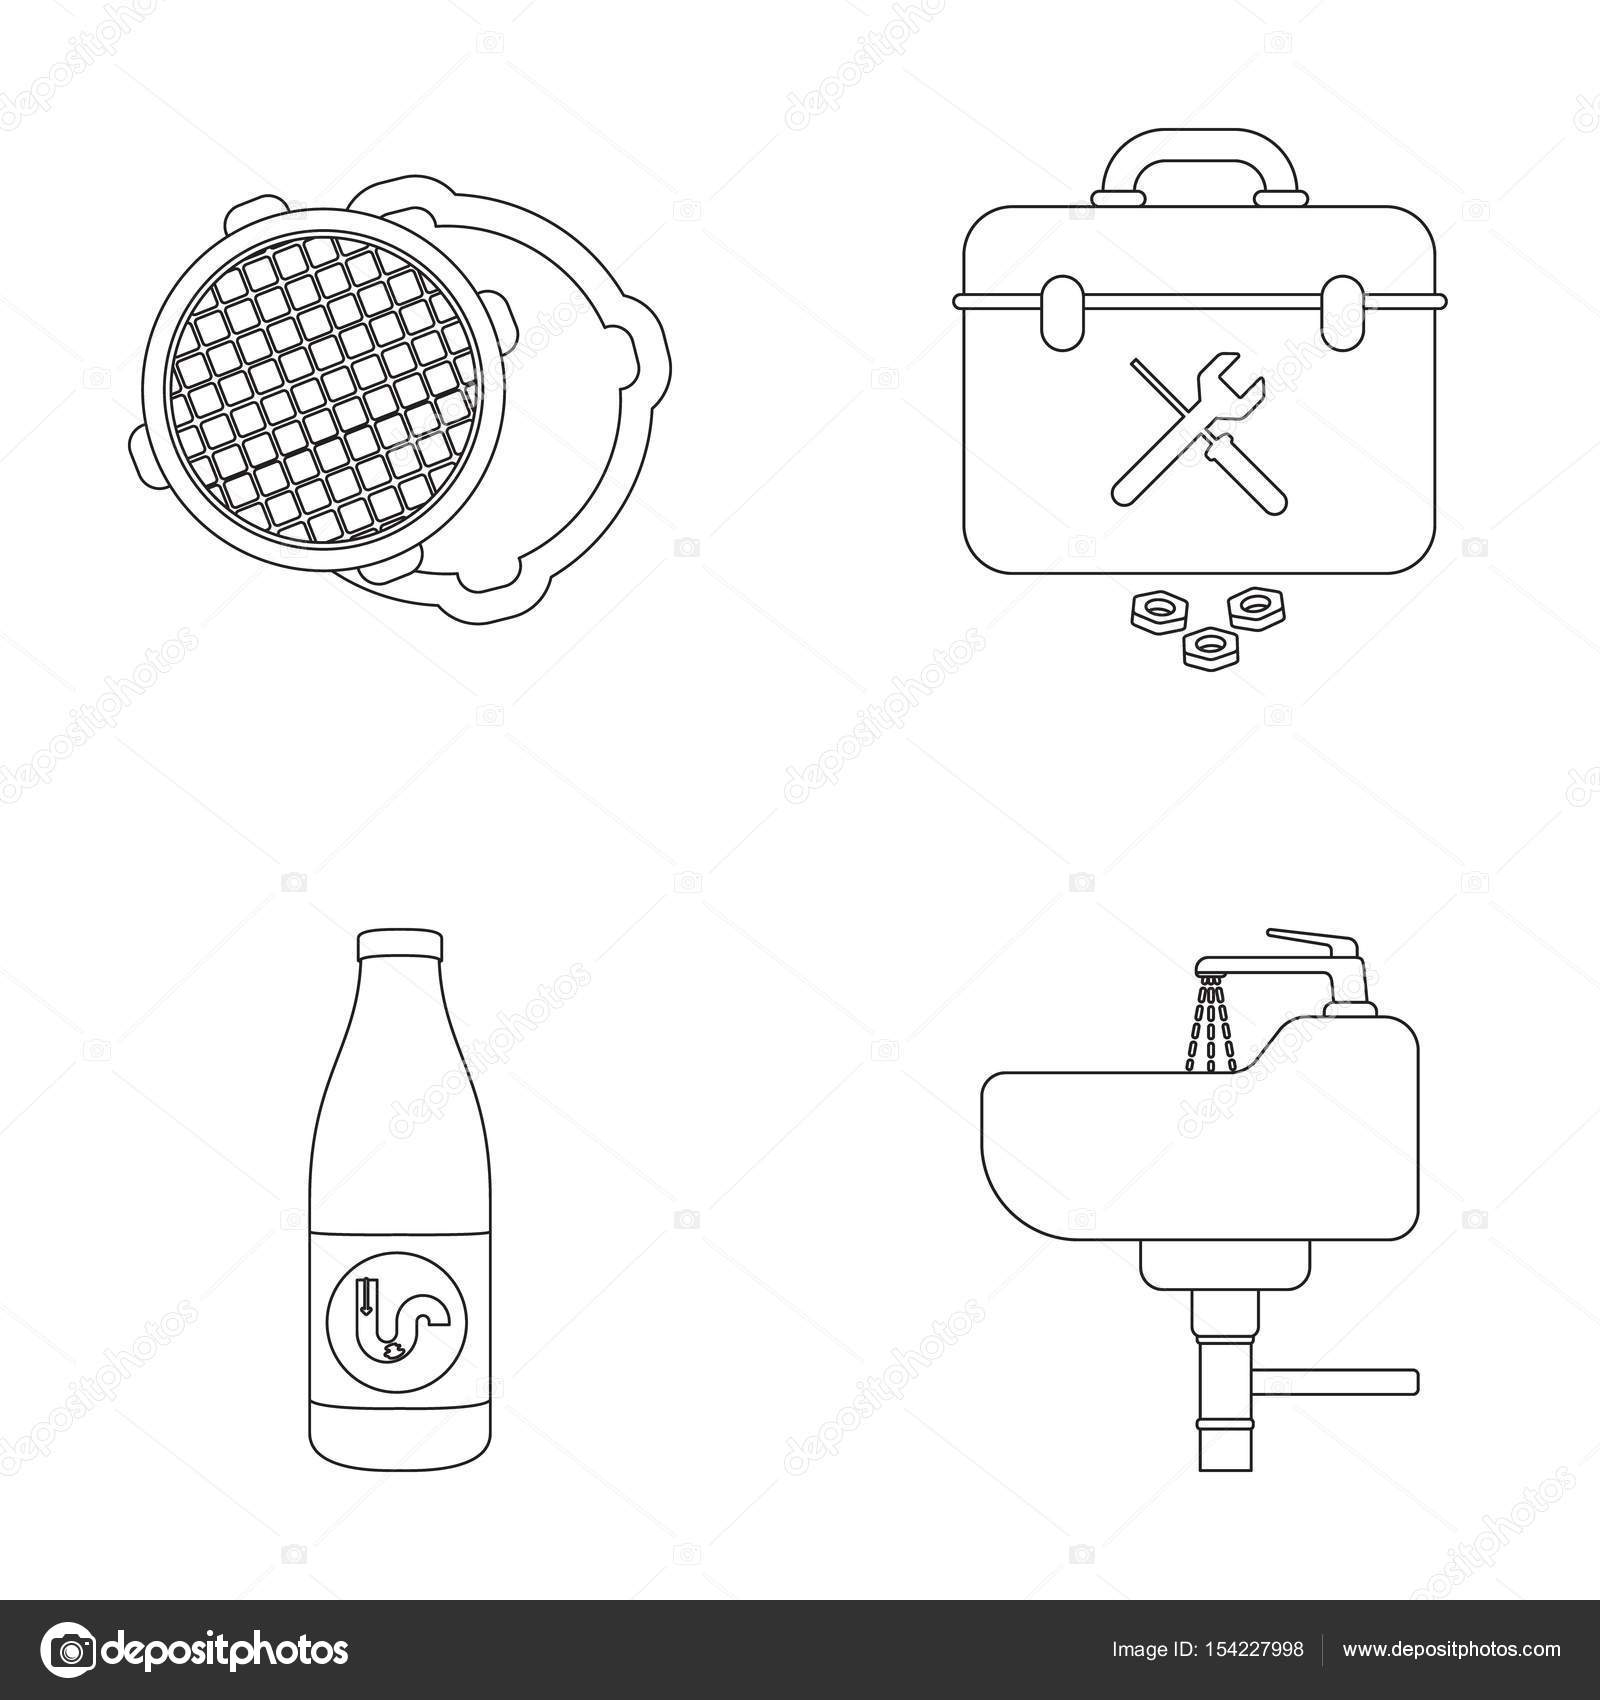 hight resolution of a sewer hatch a tool box a wash basin and other equipment plumbing set collection icons in outline style vector symbol stock illustration